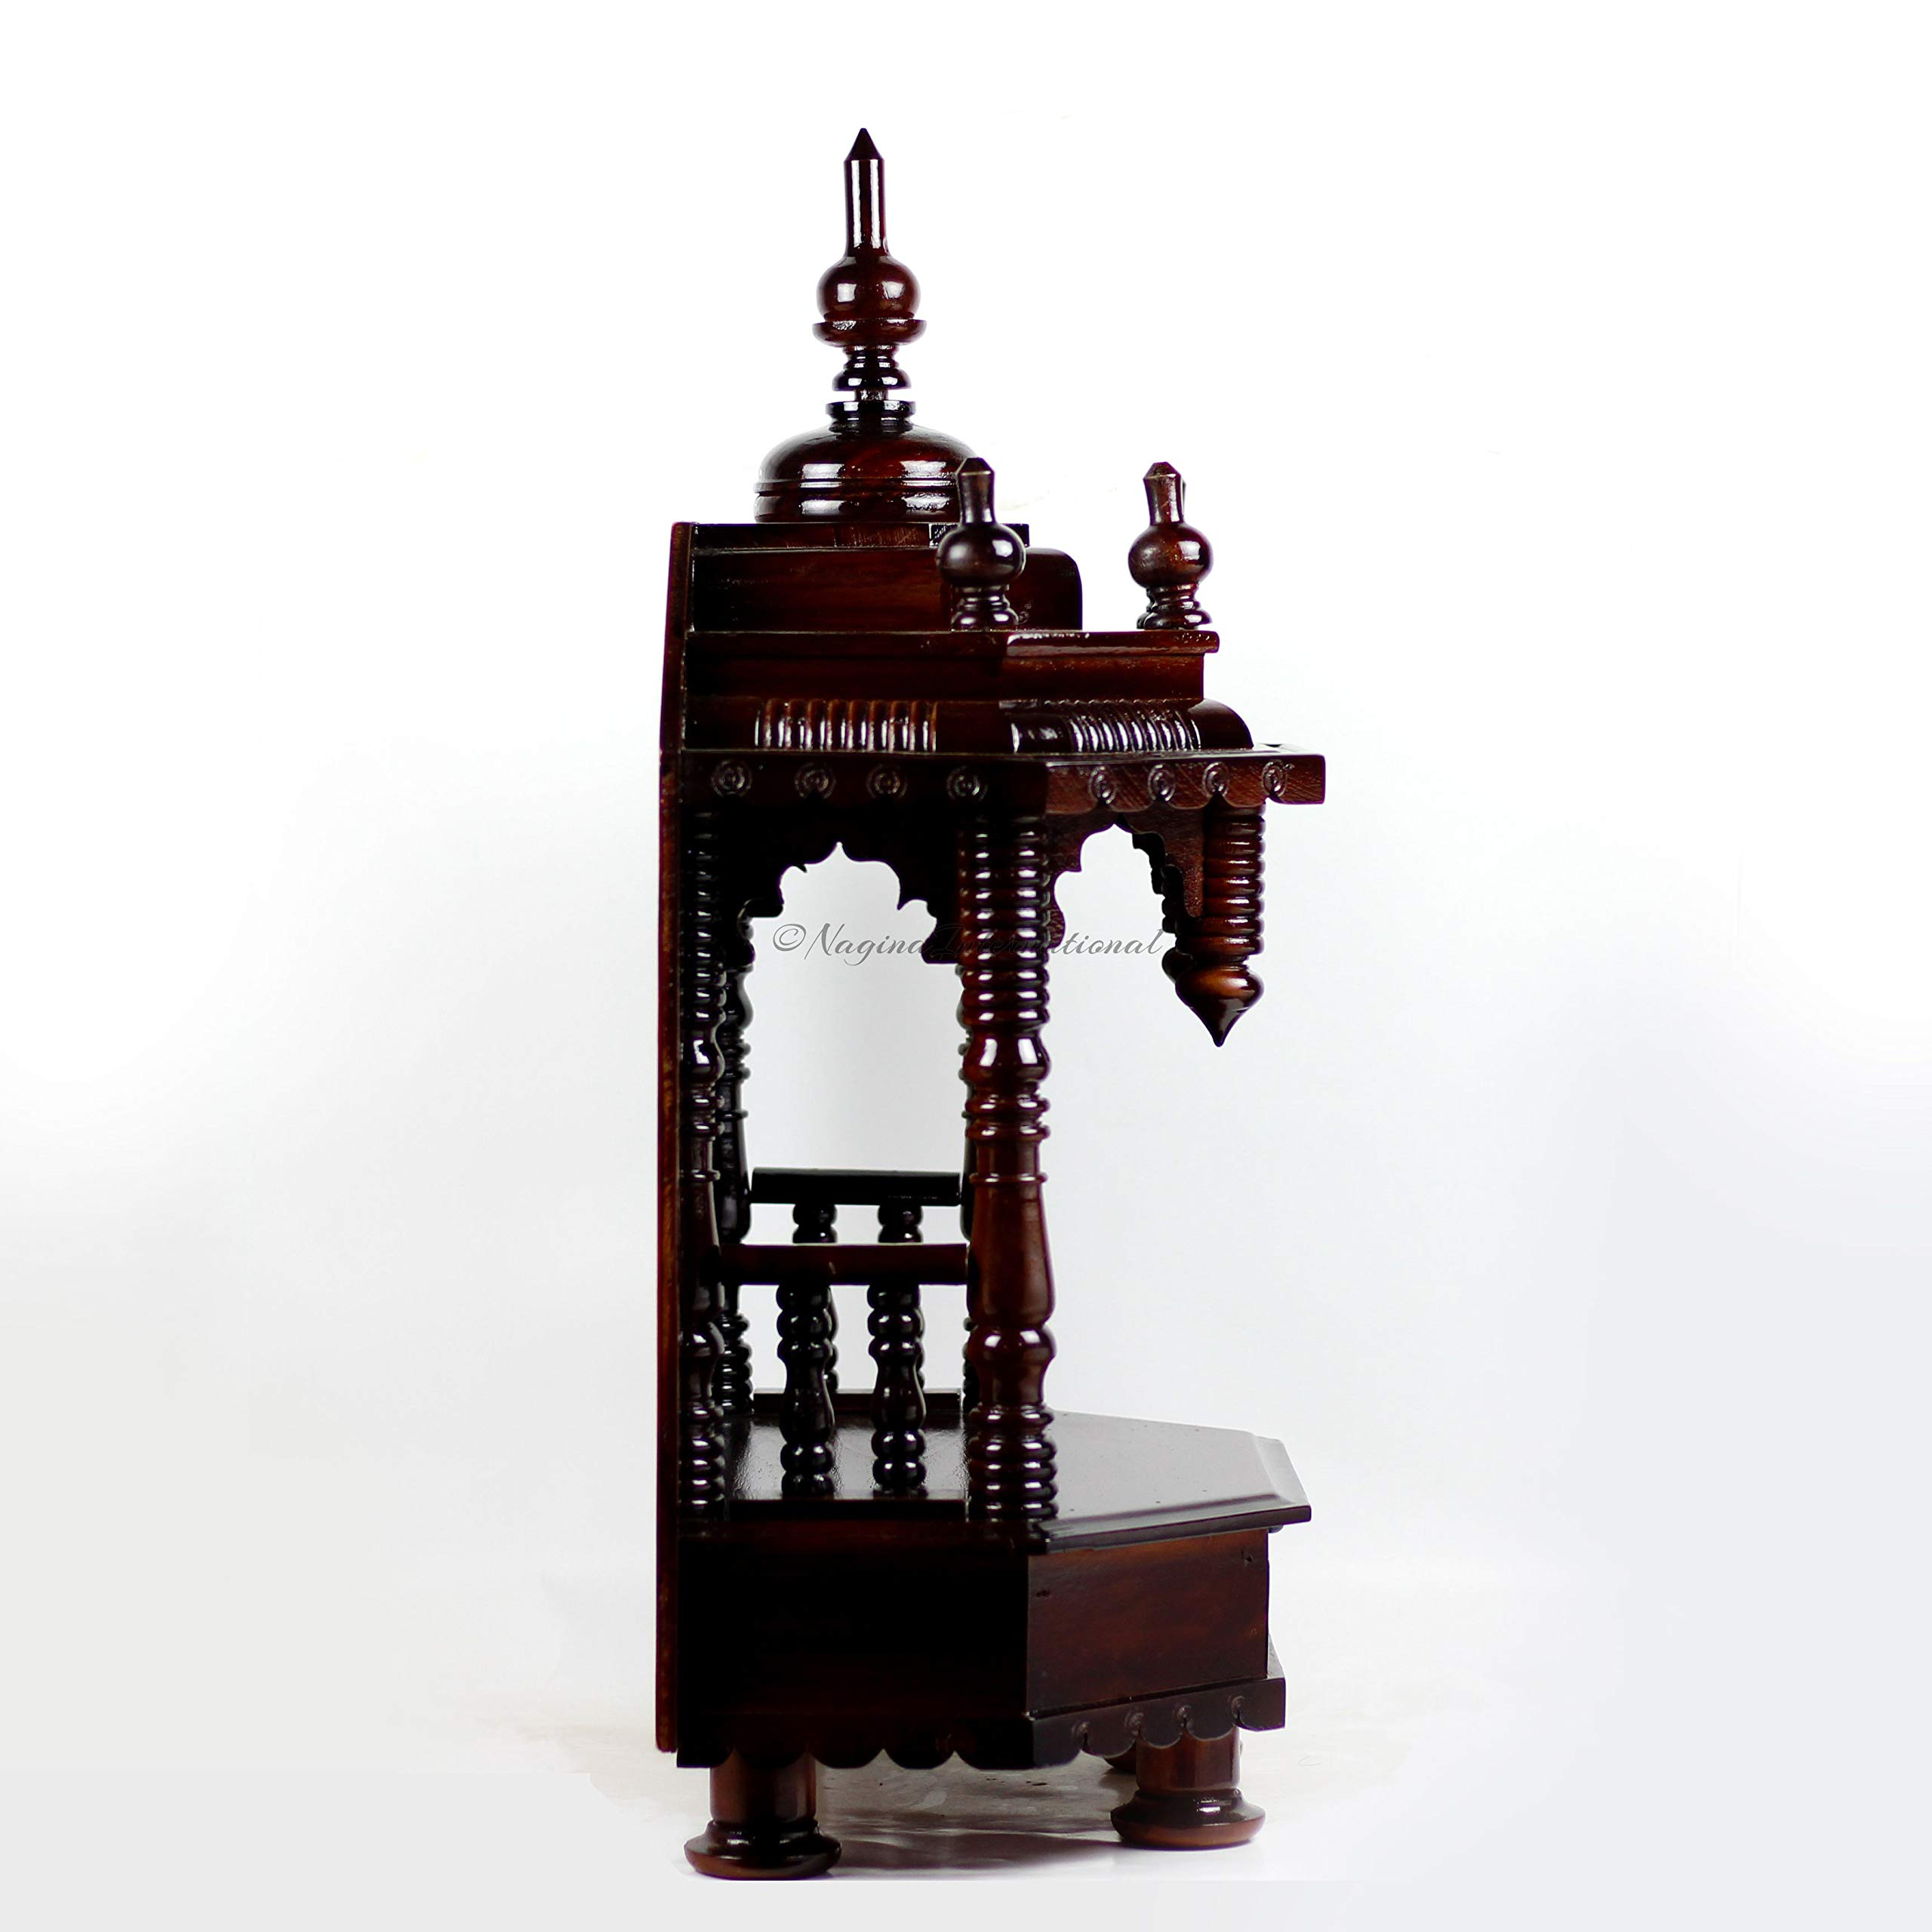 Nagina International Premium Hand Made Wooden Temple | Wooden Indian Mandir | Sheesham Wooden Madir (Dark Varnish) by Nagina International (Image #3)